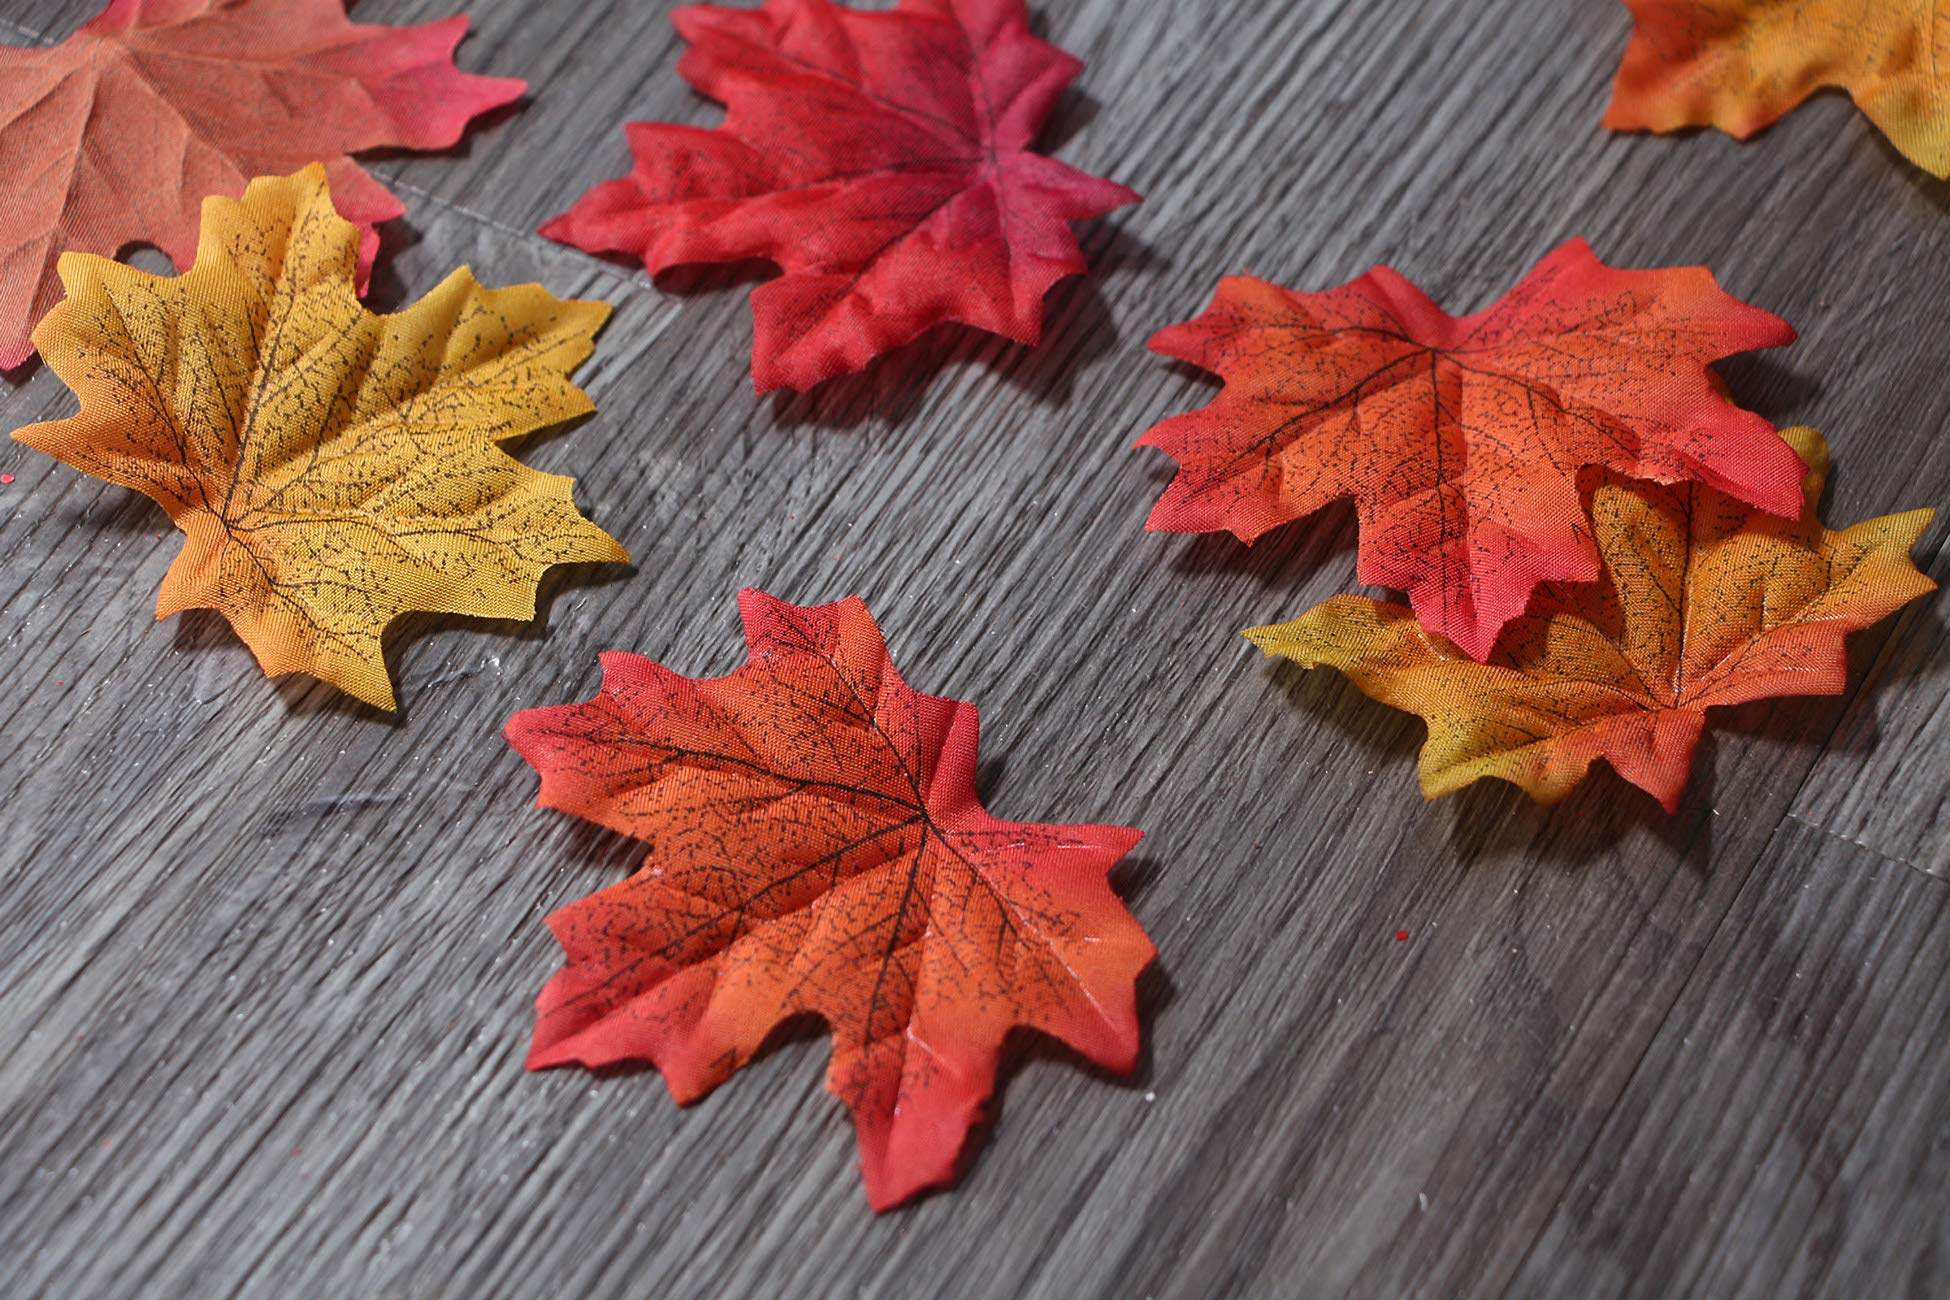 AmyHomie-300-Artificial-Maple-Leaves-in-a-Mixture-Colors-Autumn-Table-Scatters-for-Fall-Weddings-Autumn-Parties-6